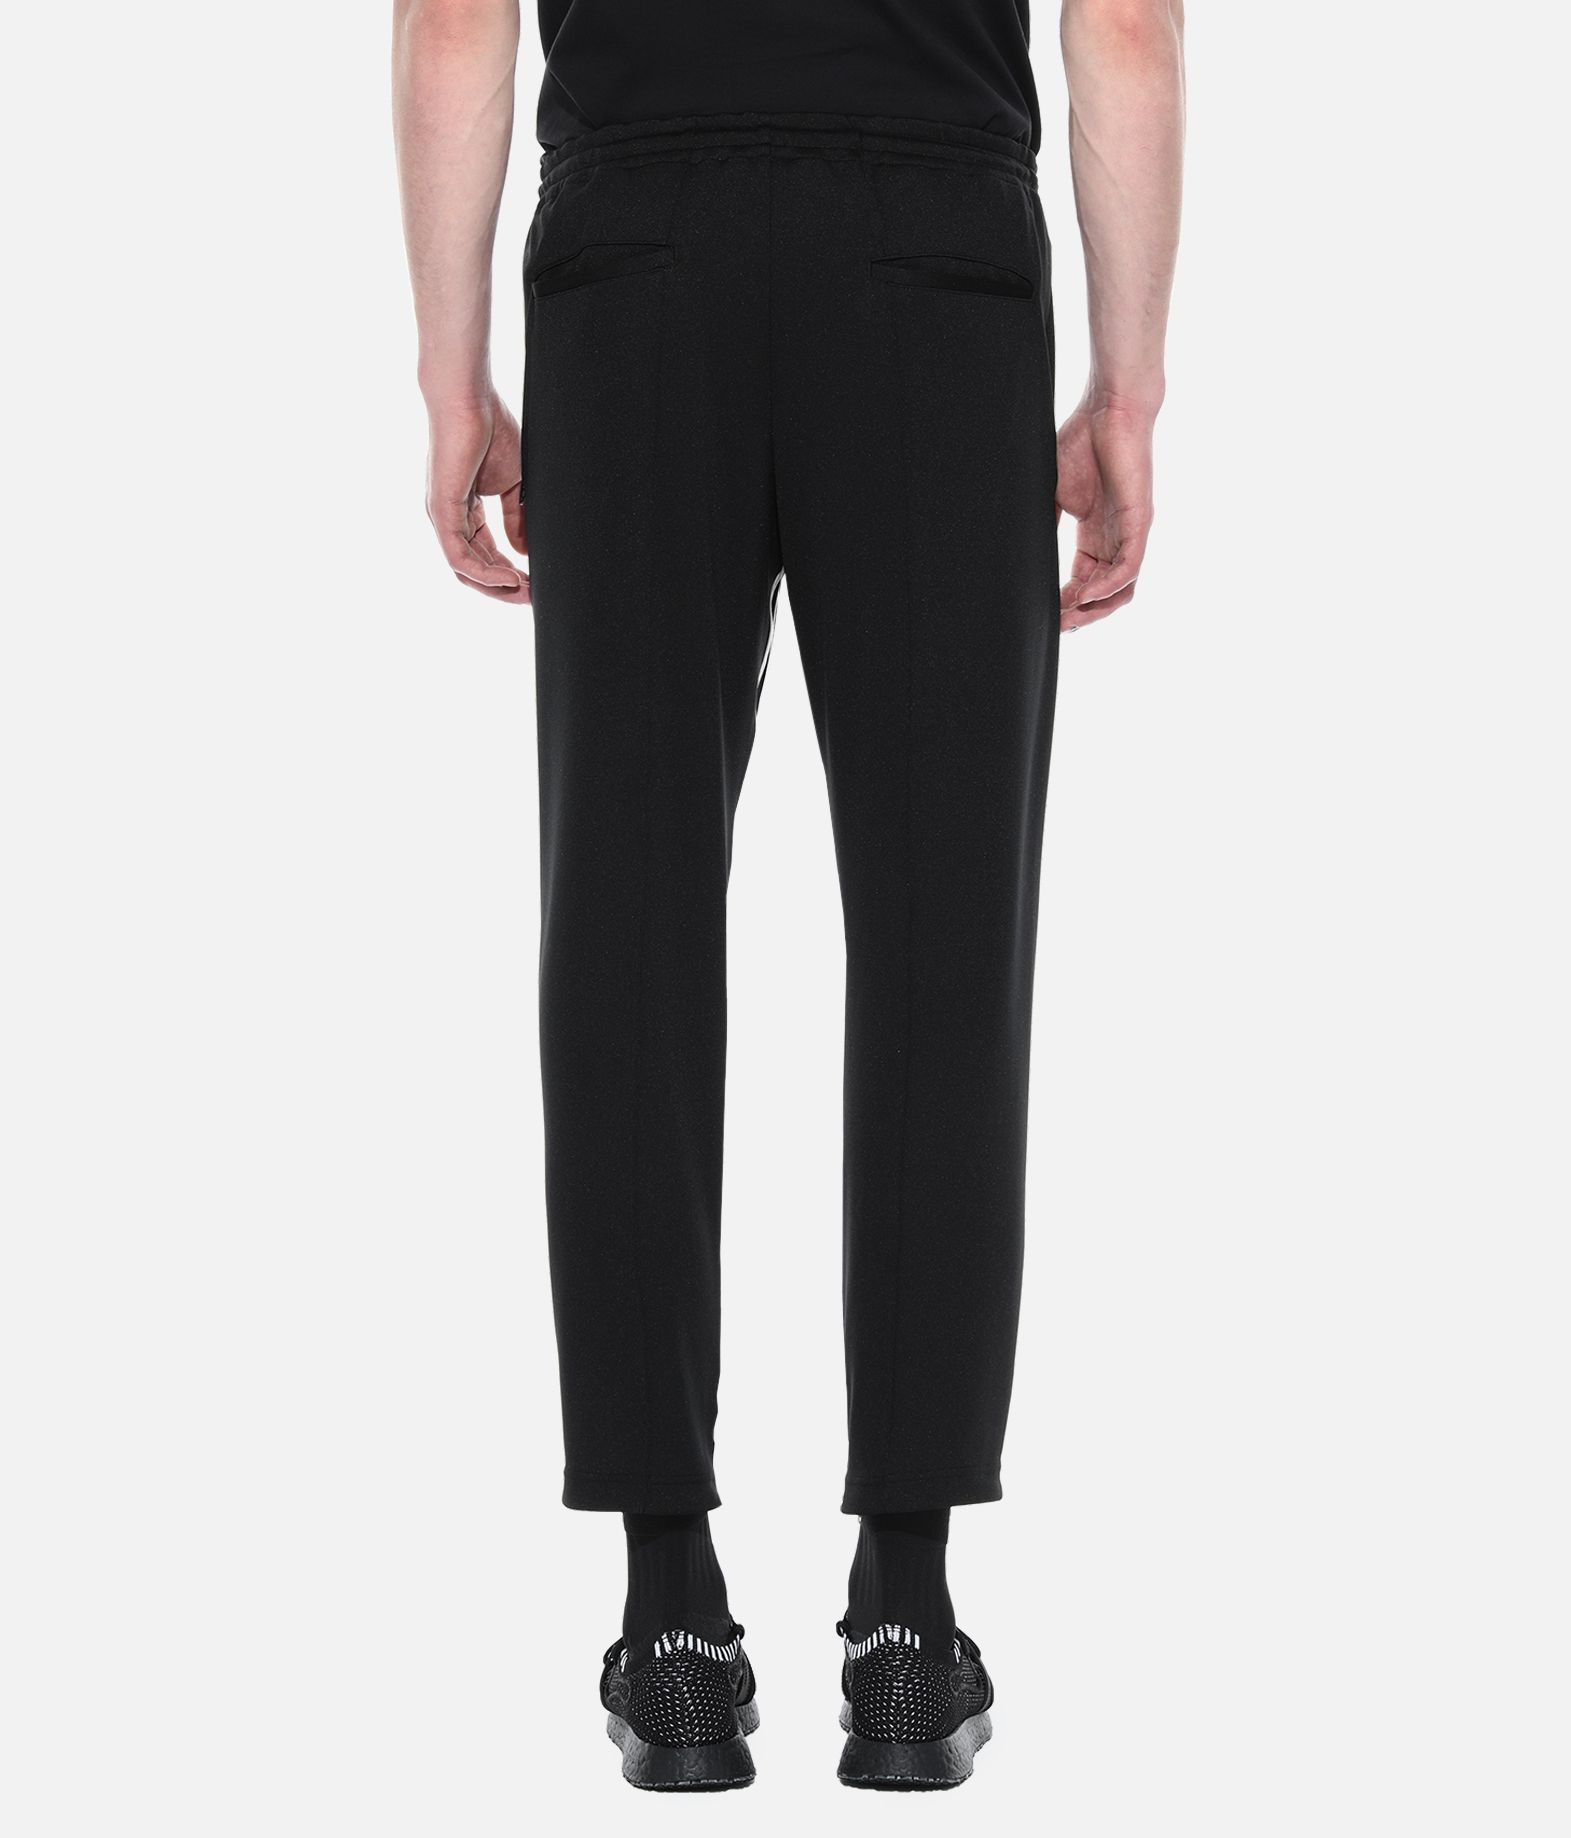 Y-3 Y-3 3-Stripes Cropped Track Pants Tracksuit pants Man d